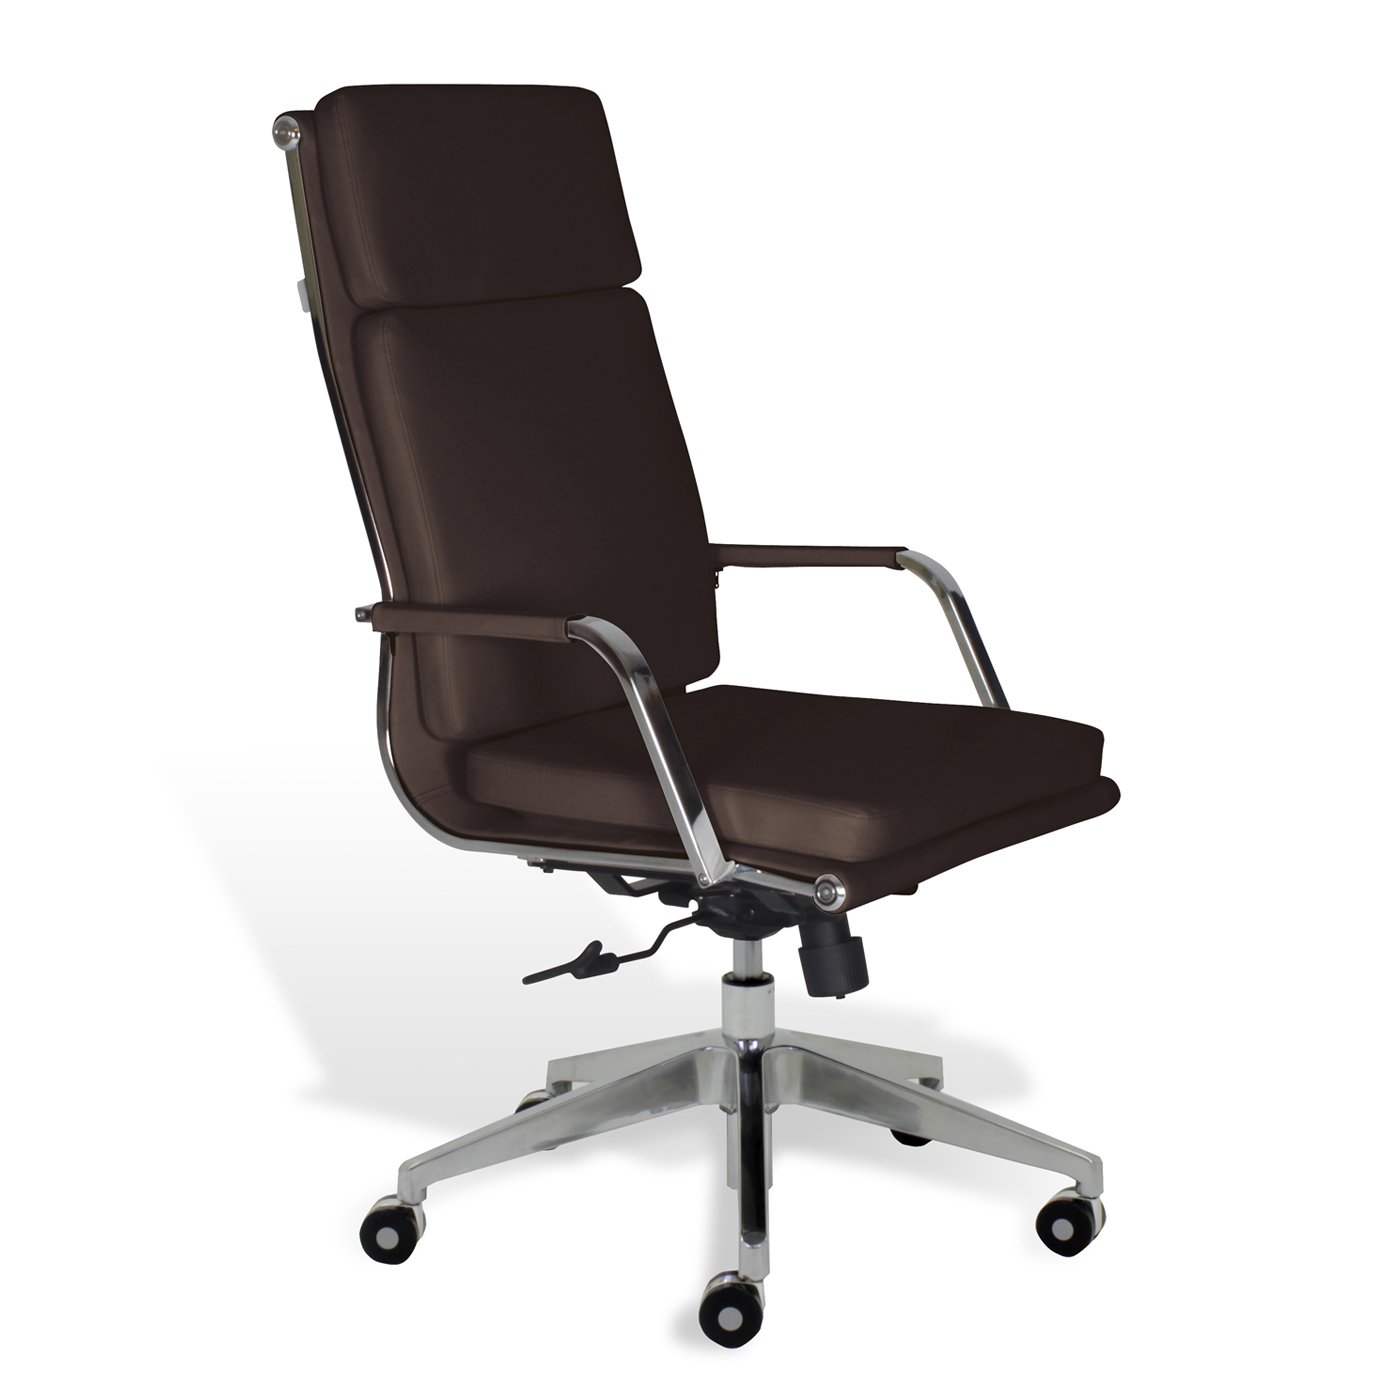 unique office chair